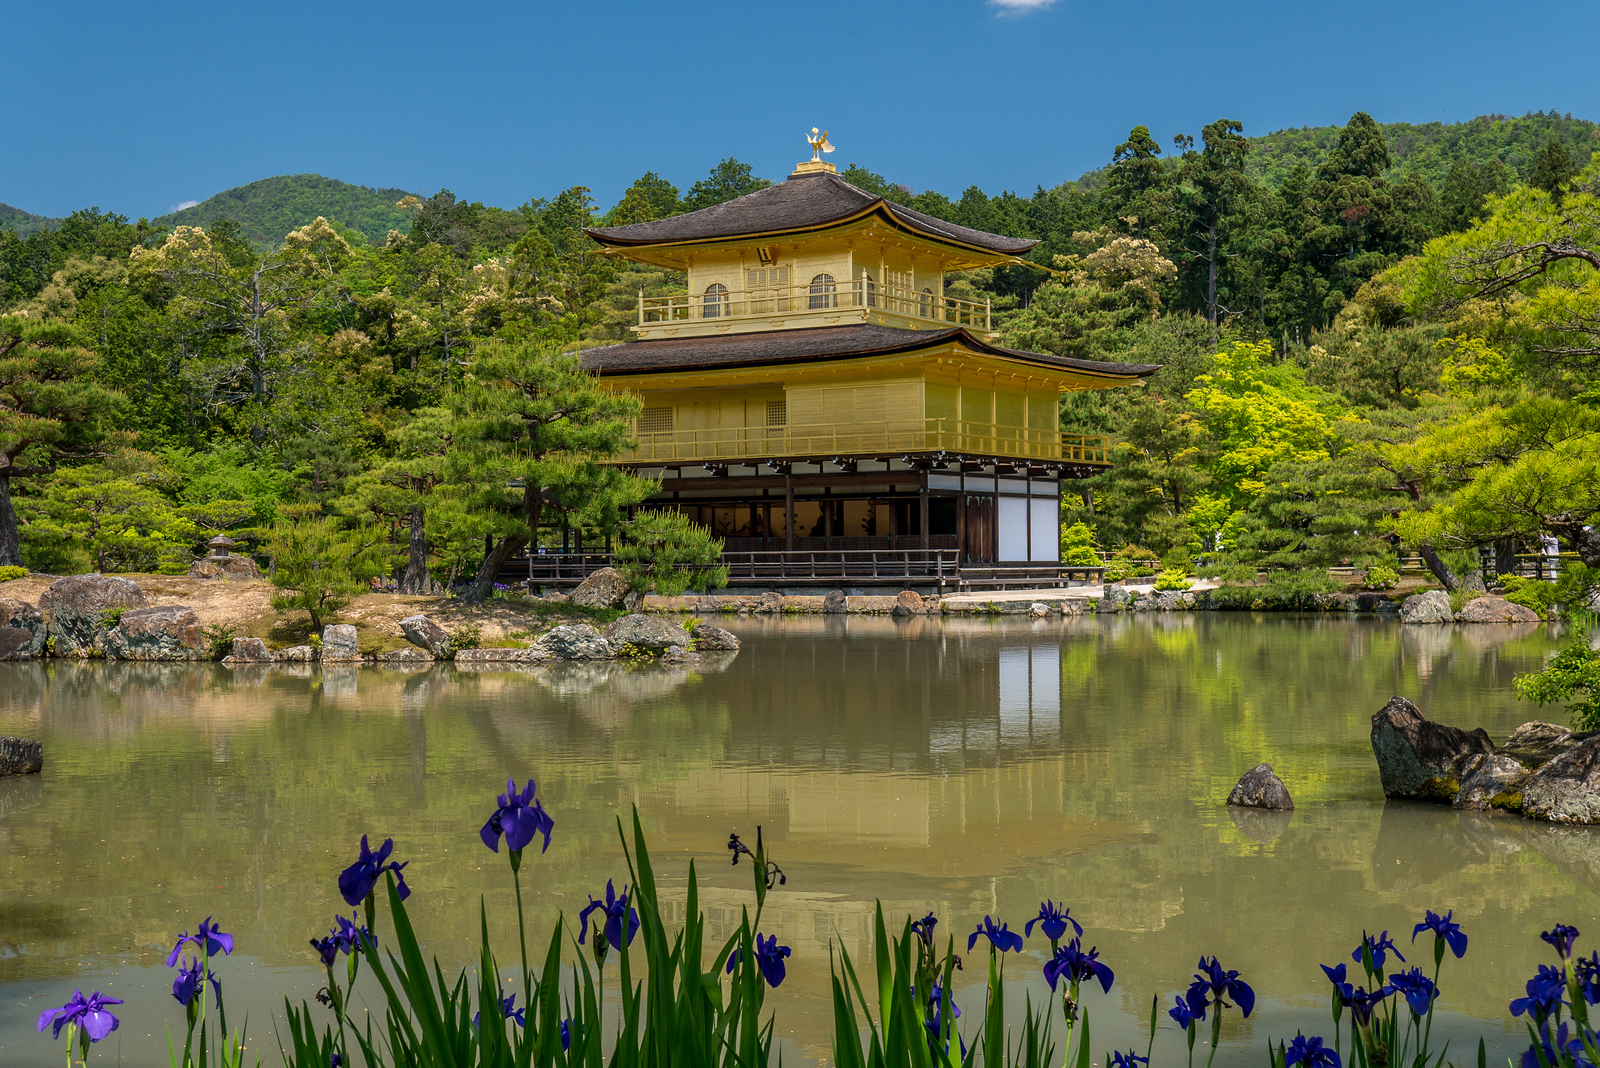 Kyoto's Golden Temple, Kinkaku-ji